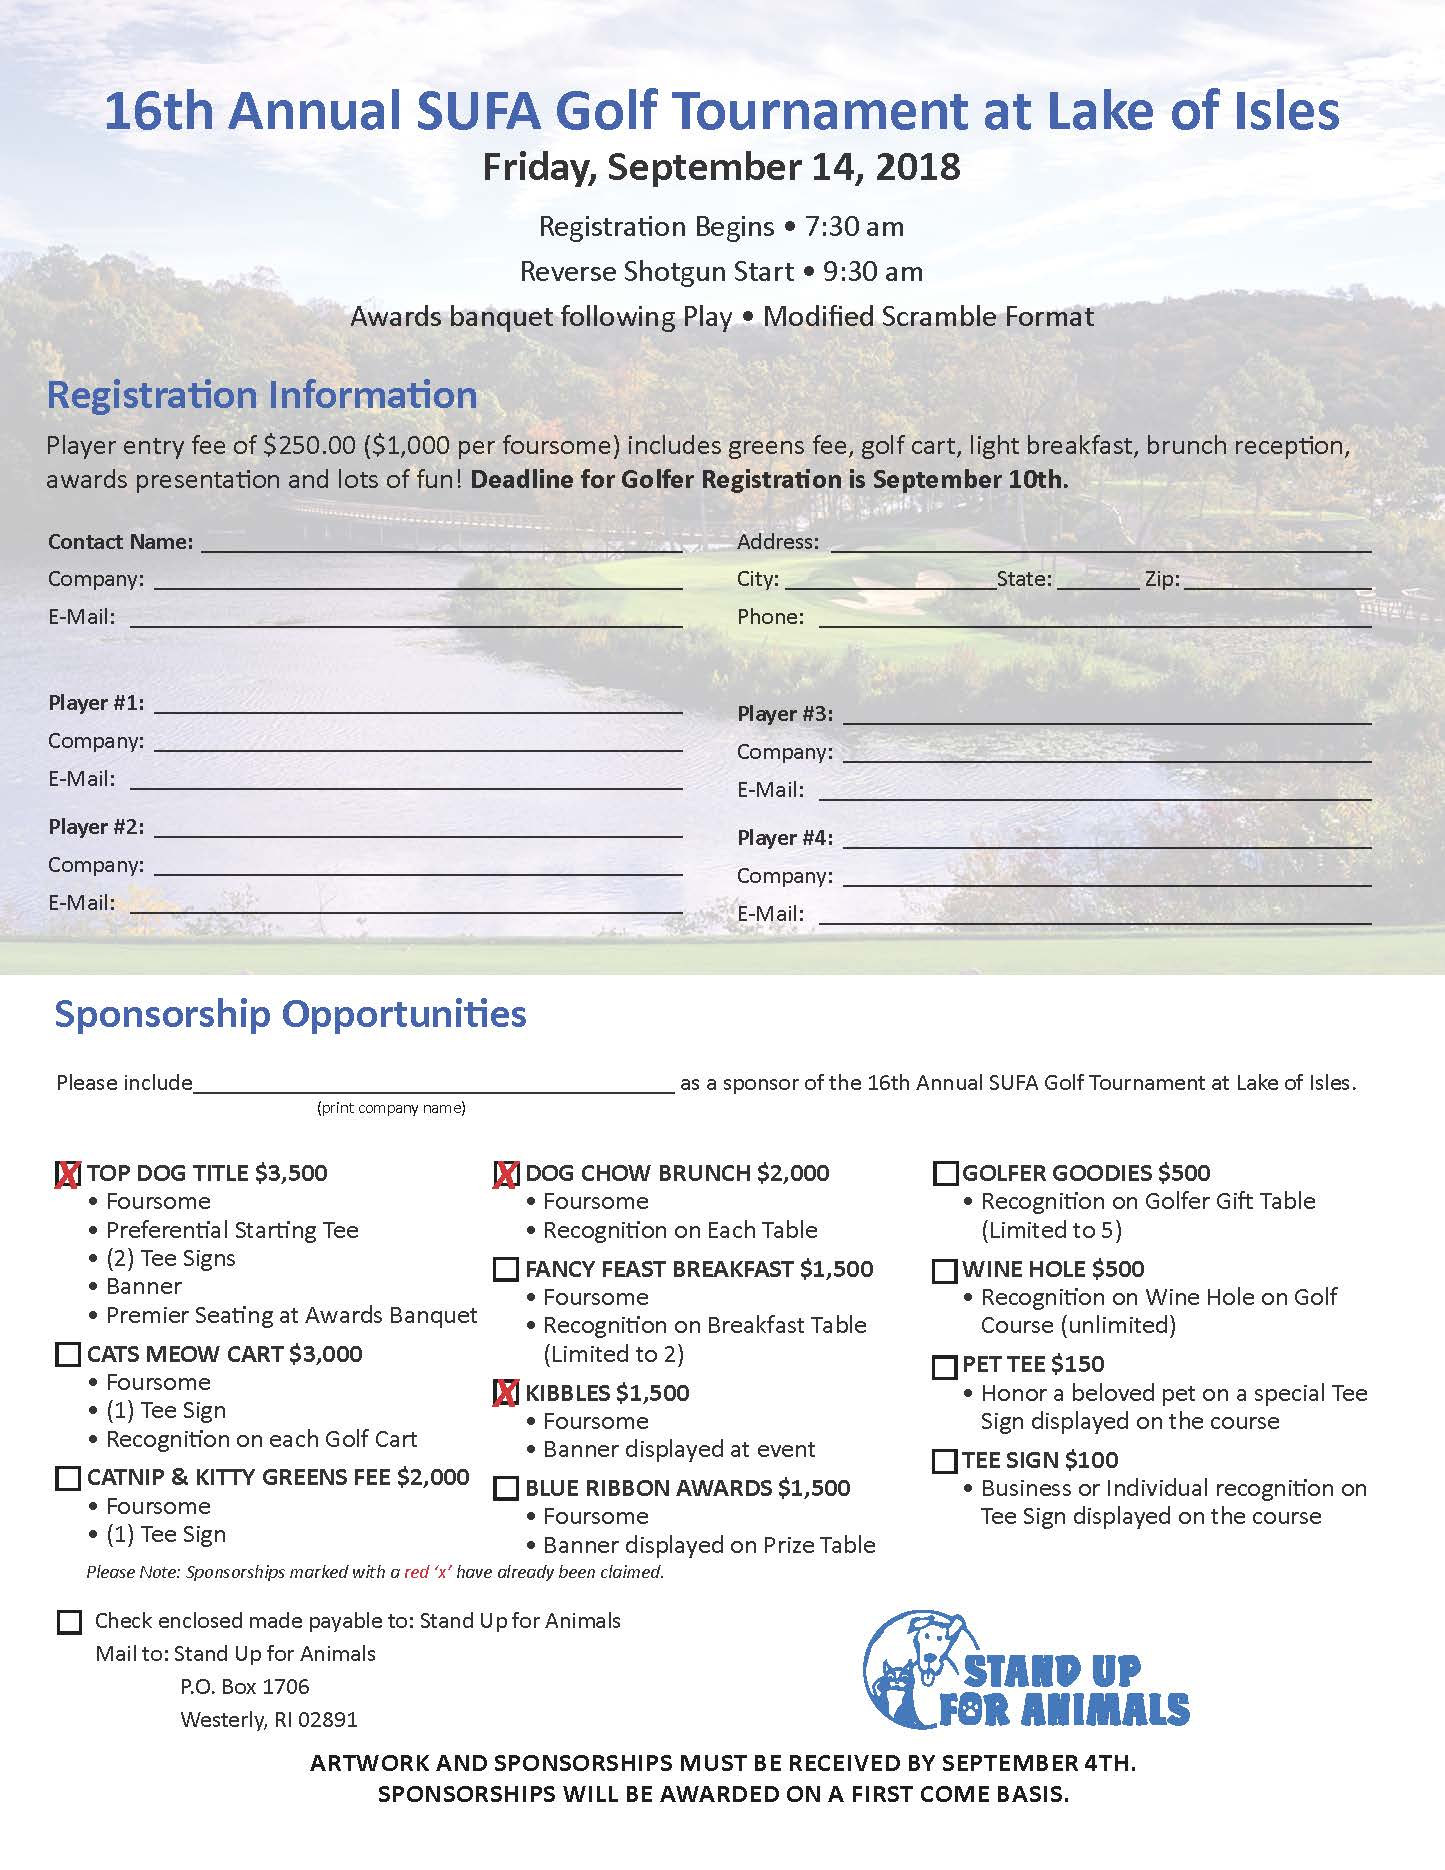 16th Annual Stand Up For Animals Golf Tournament Fundraiser